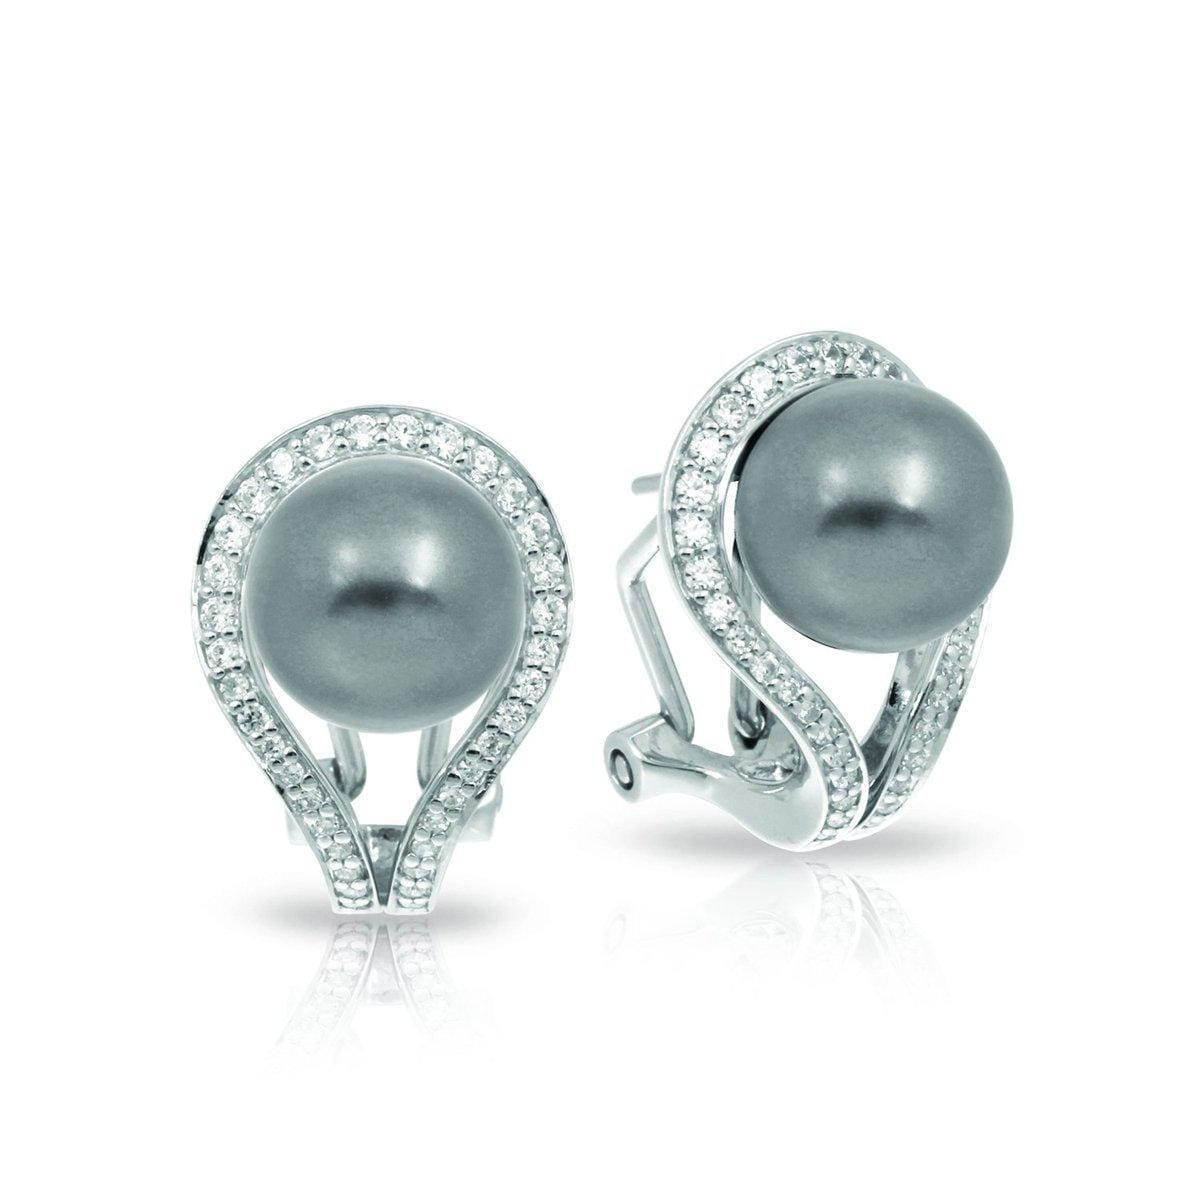 Claire Grey Earrings-Belle Etoile-Renee Taylor Gallery